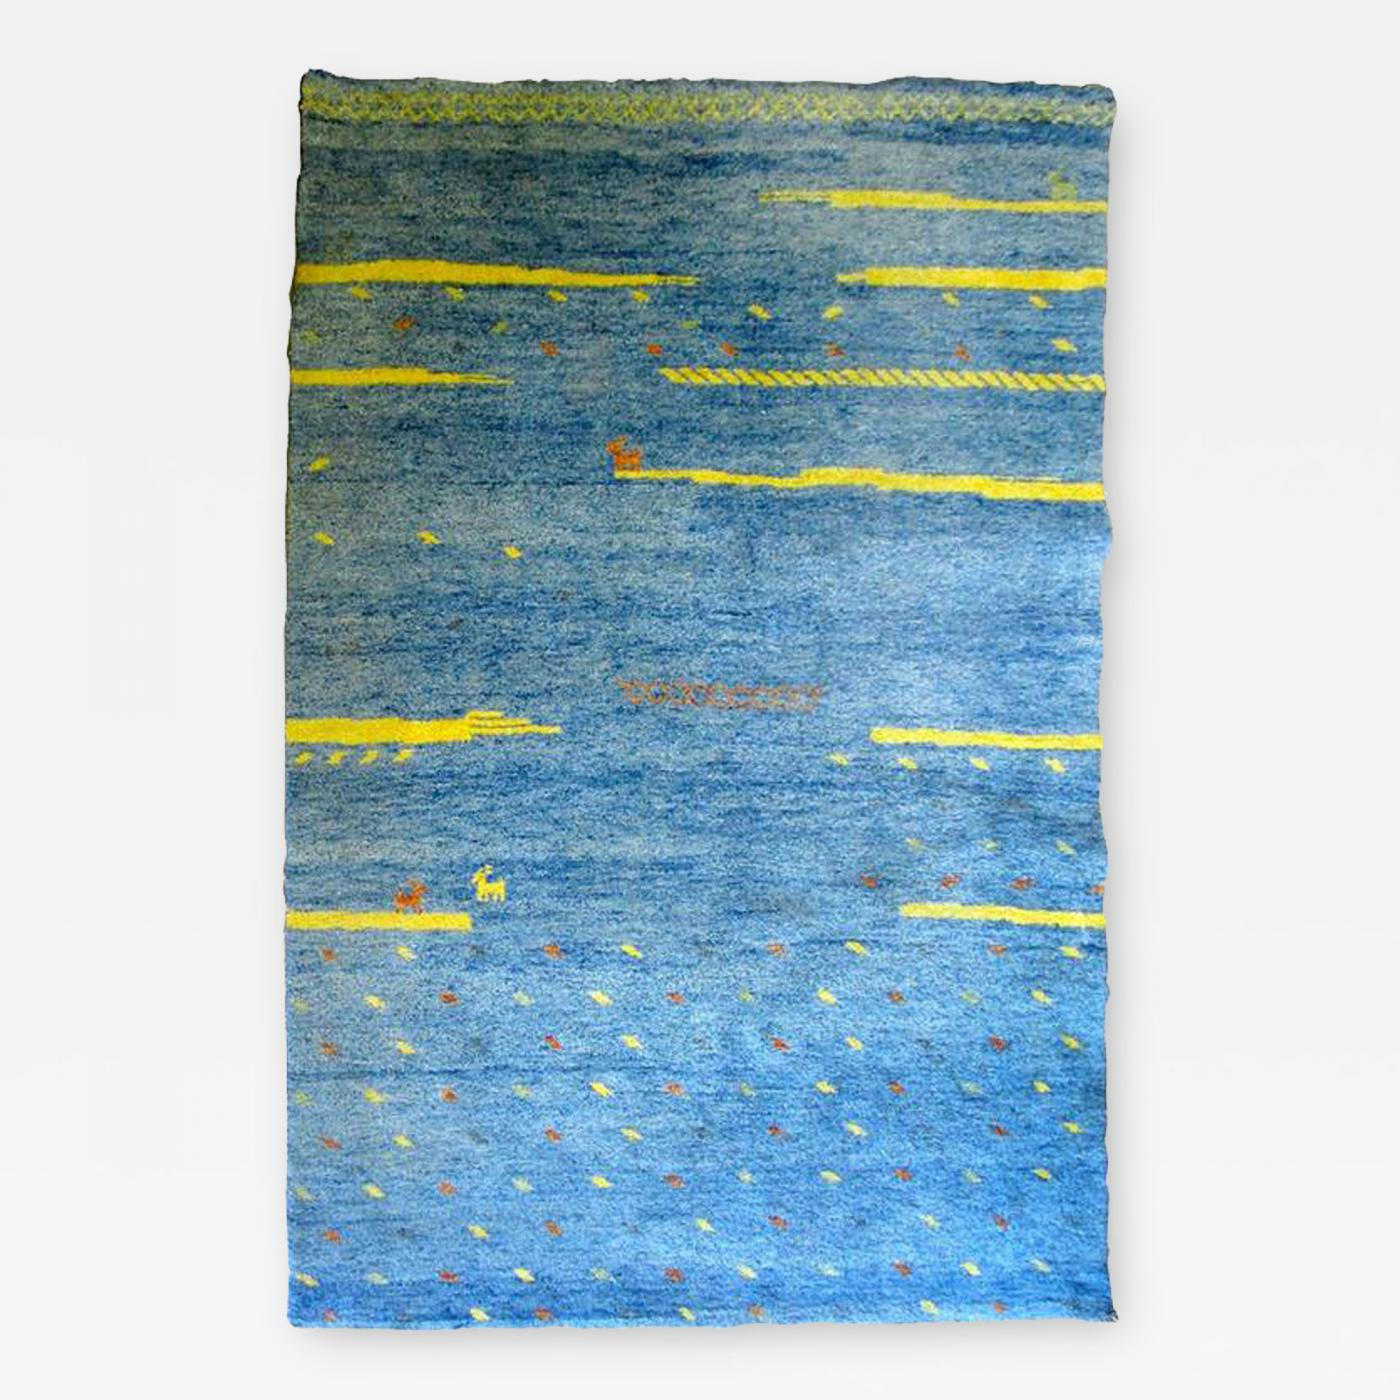 Listings / Decorative Arts / Textiles / Rugs & Carpets  Bright Blue ...